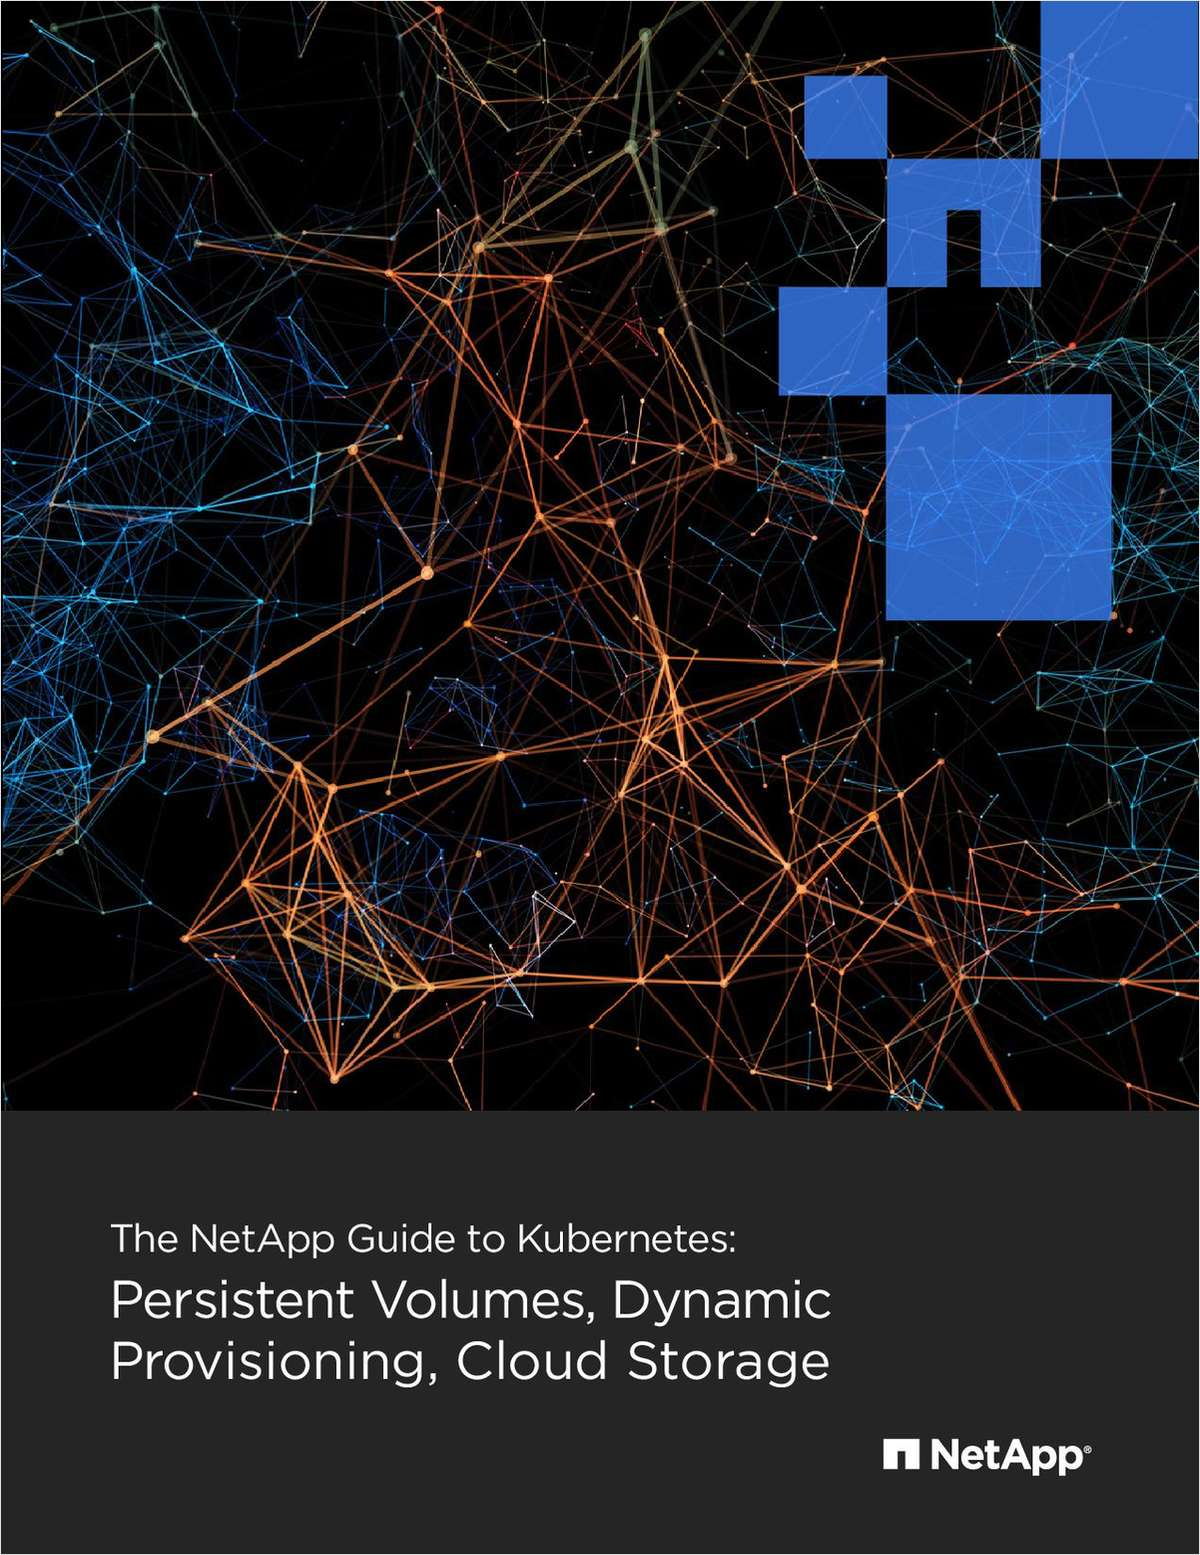 The NetApp Guide to Kubernetes: Persistent Volumes, Dynamic Provisioning, Cloud Storage